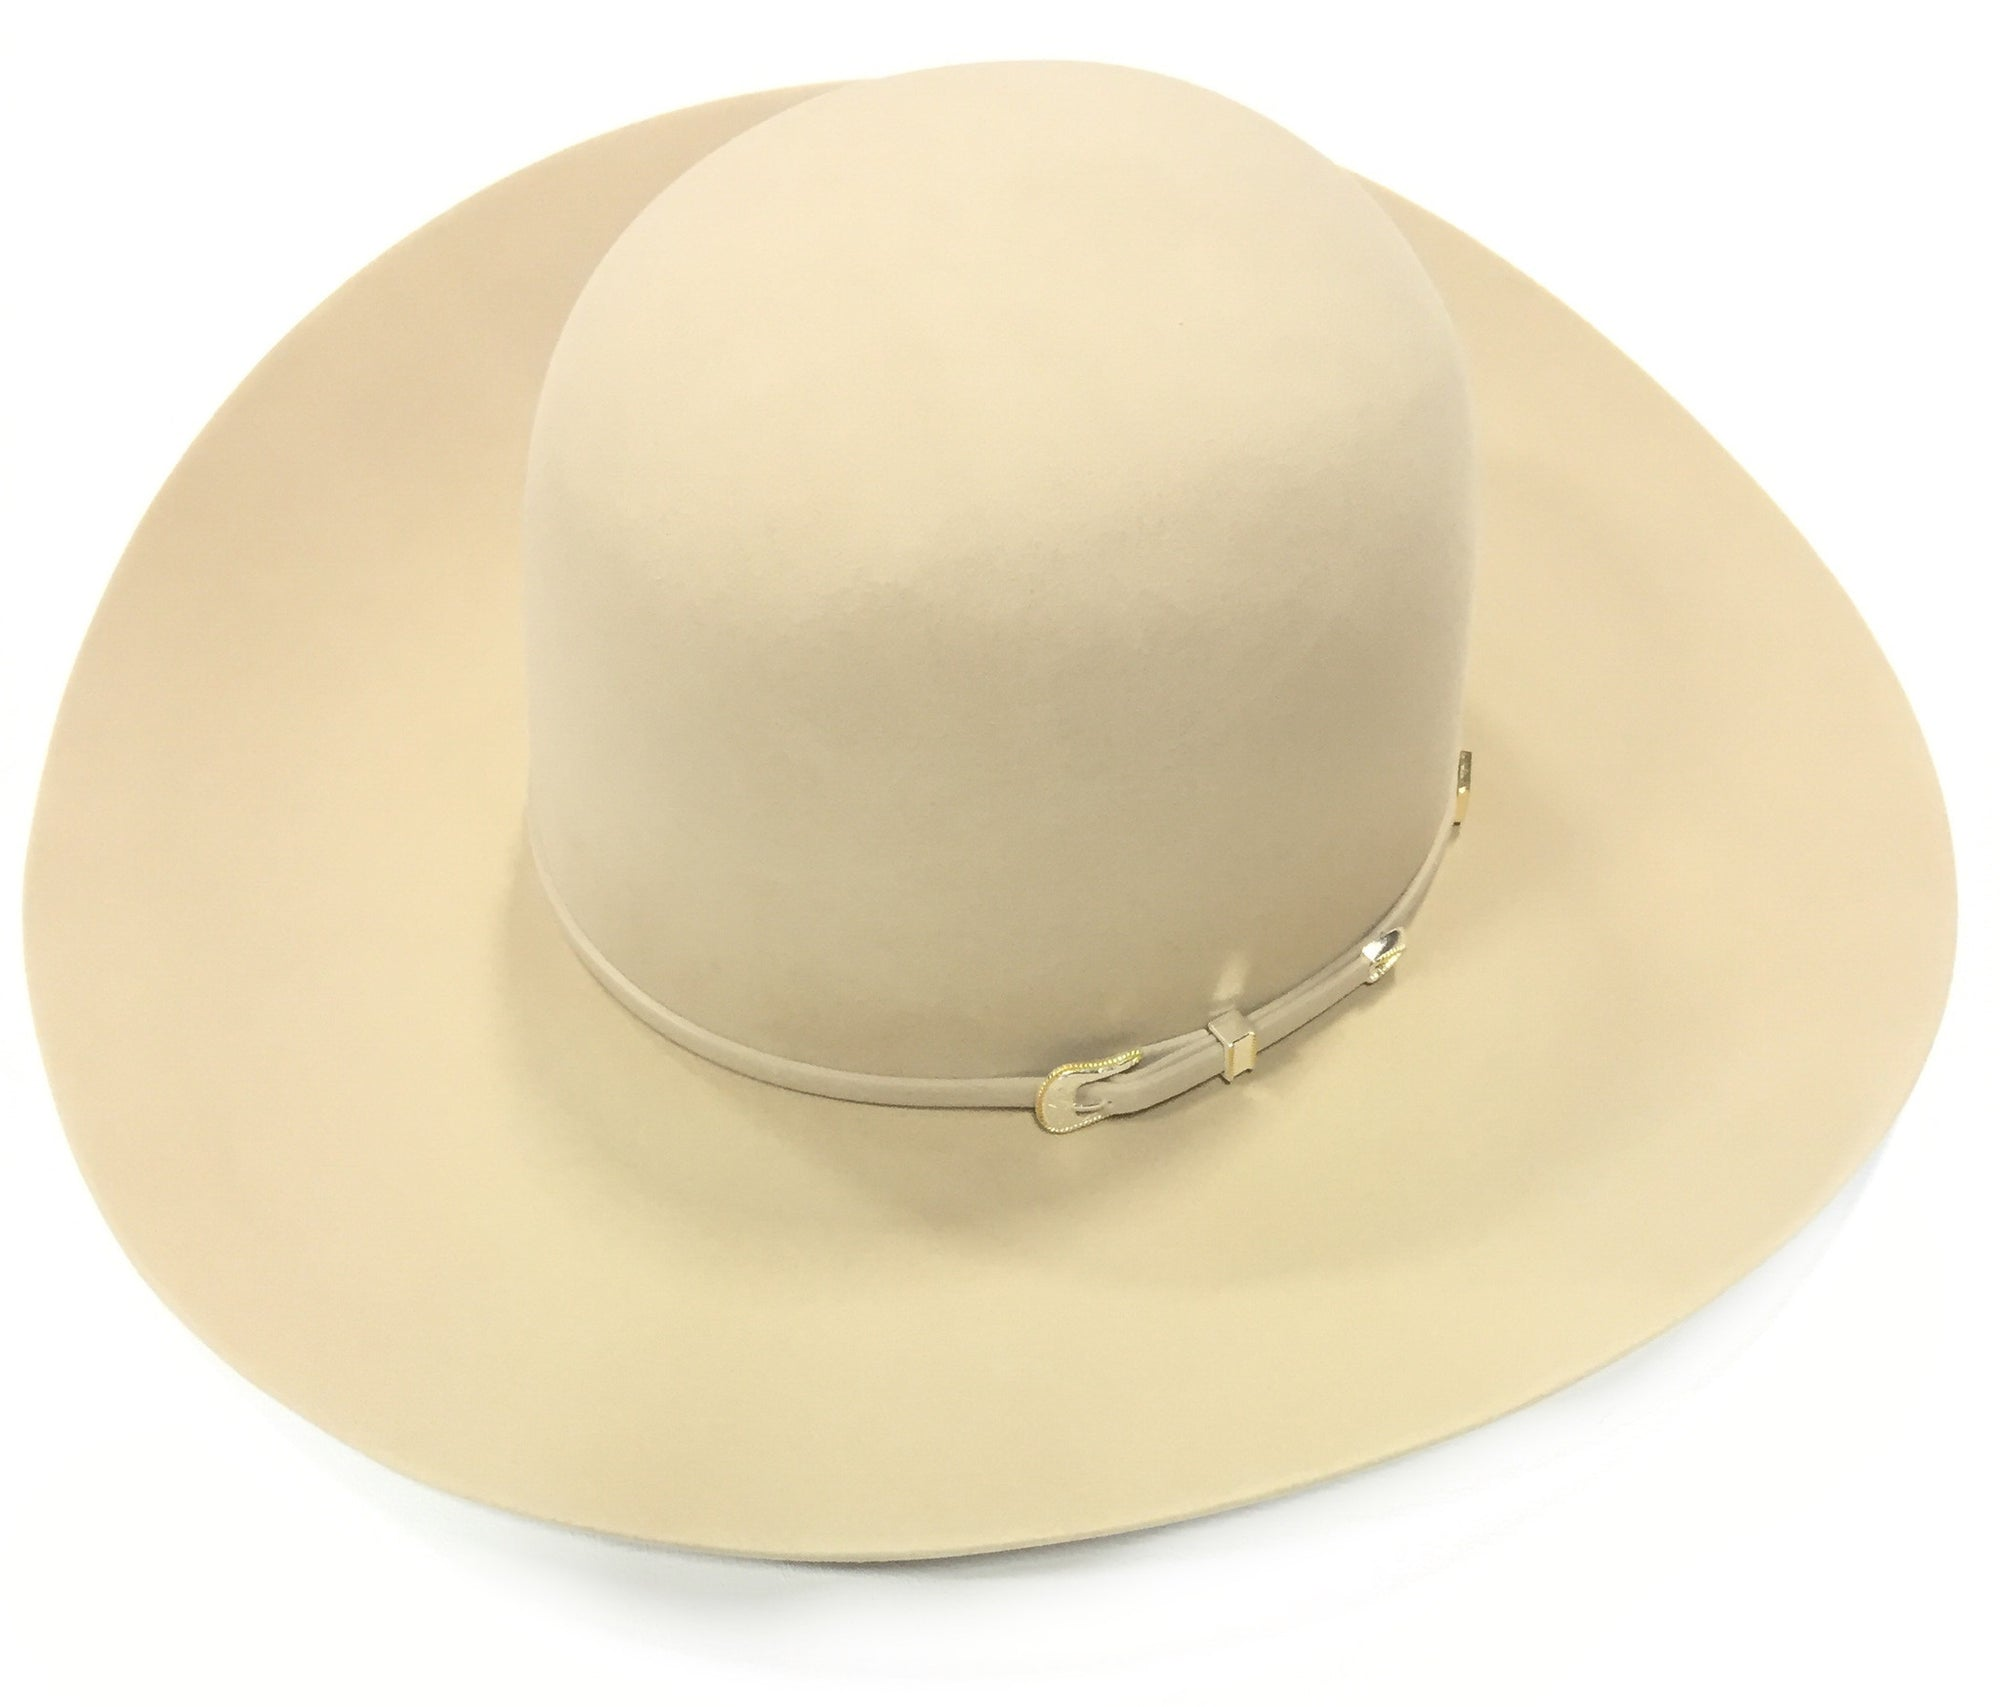 American Hat Co. 10X Buckskin Felt Hat